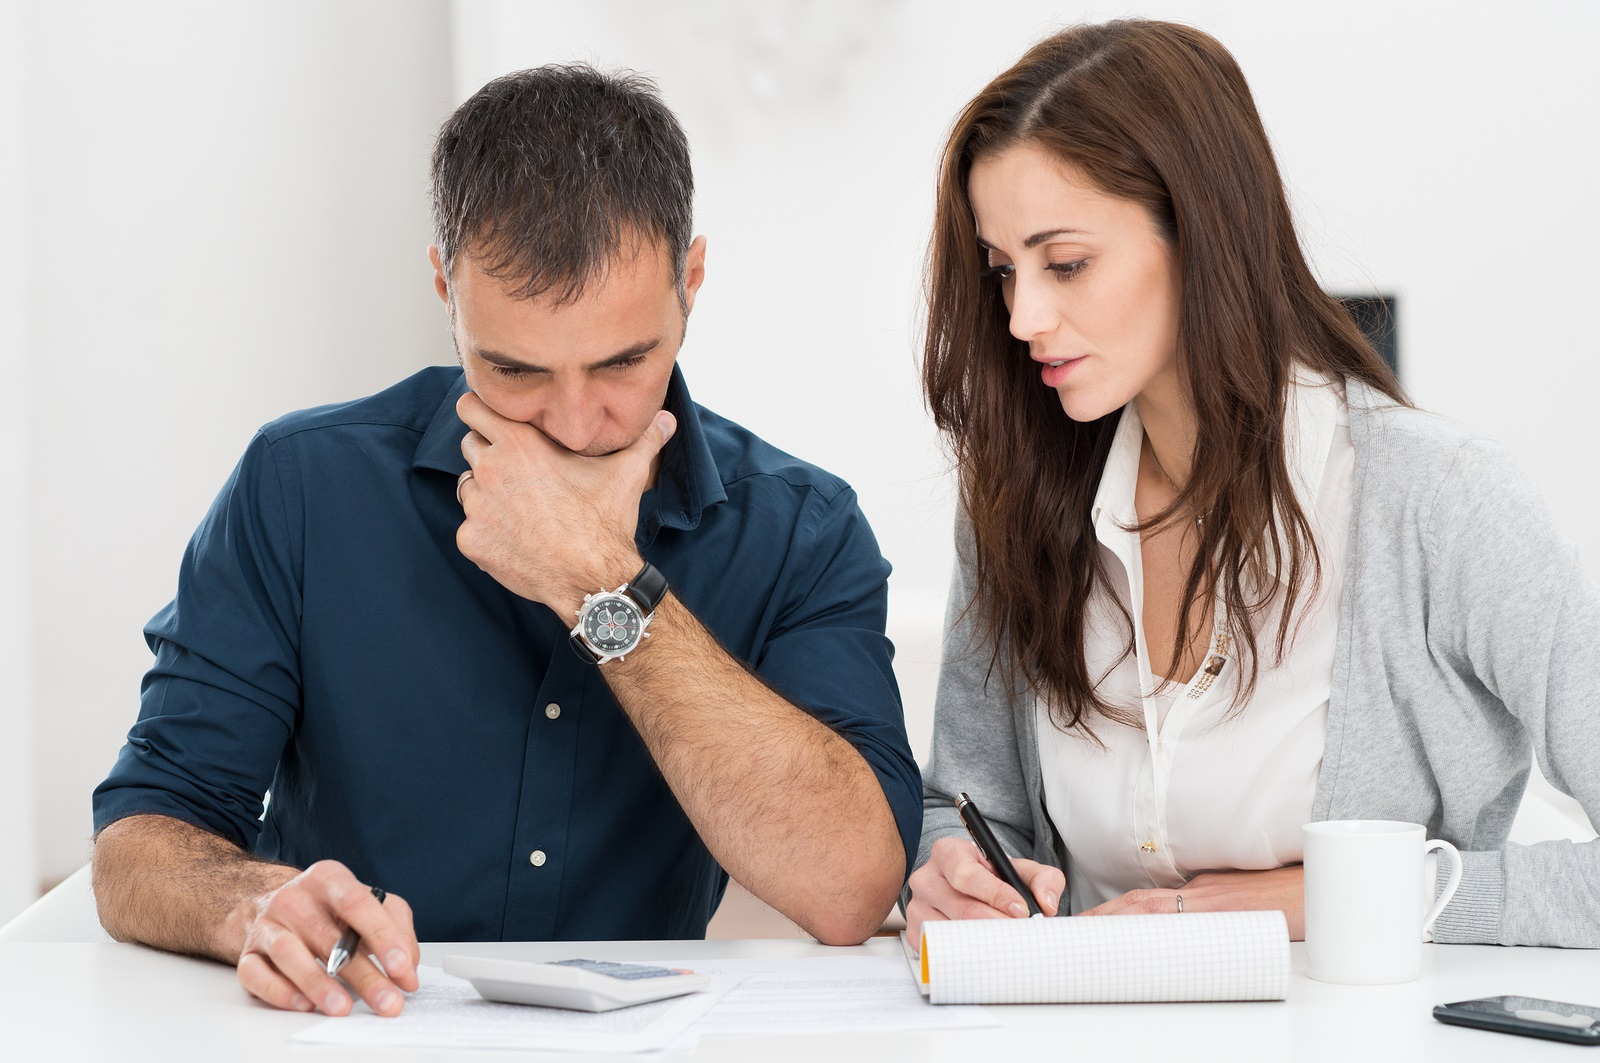 #Budgeting - Useful Money Saving Tips #finance #FrizeMedia